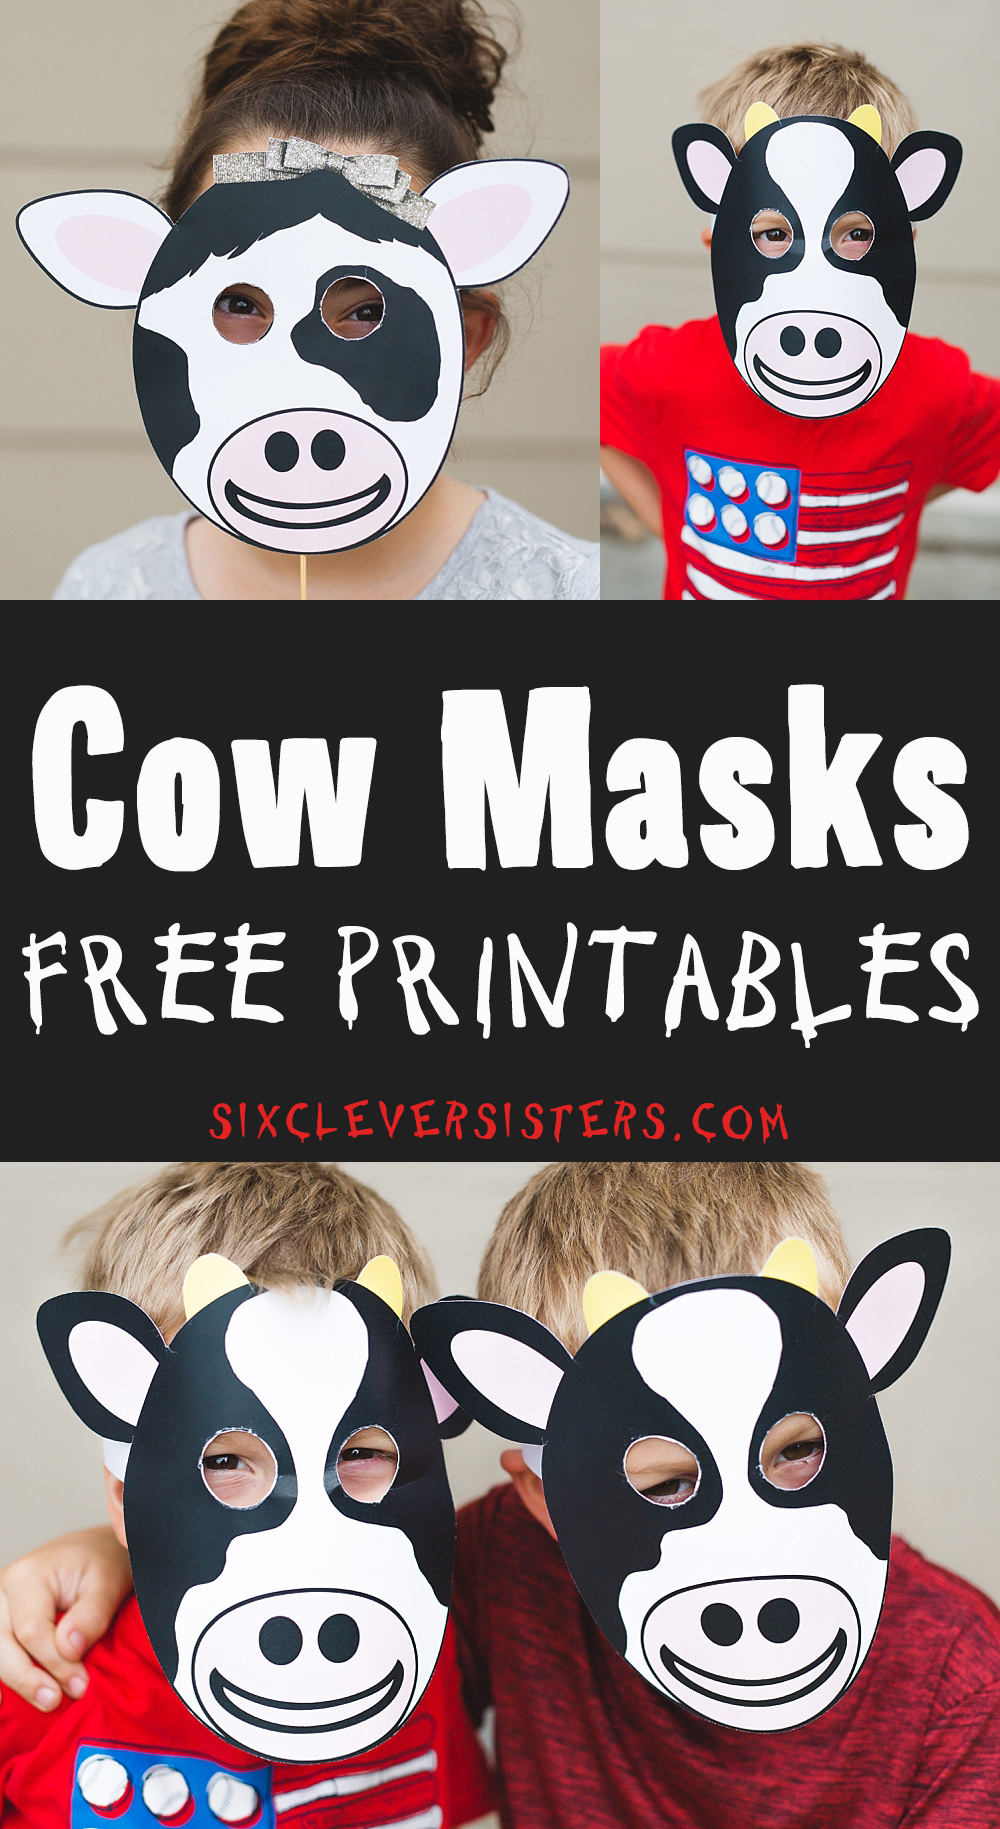 photograph about Chick Fil a Cow Printable Costume named Chick-fil-A Cow Working day Paper Plate Cow Masks With Cost-free